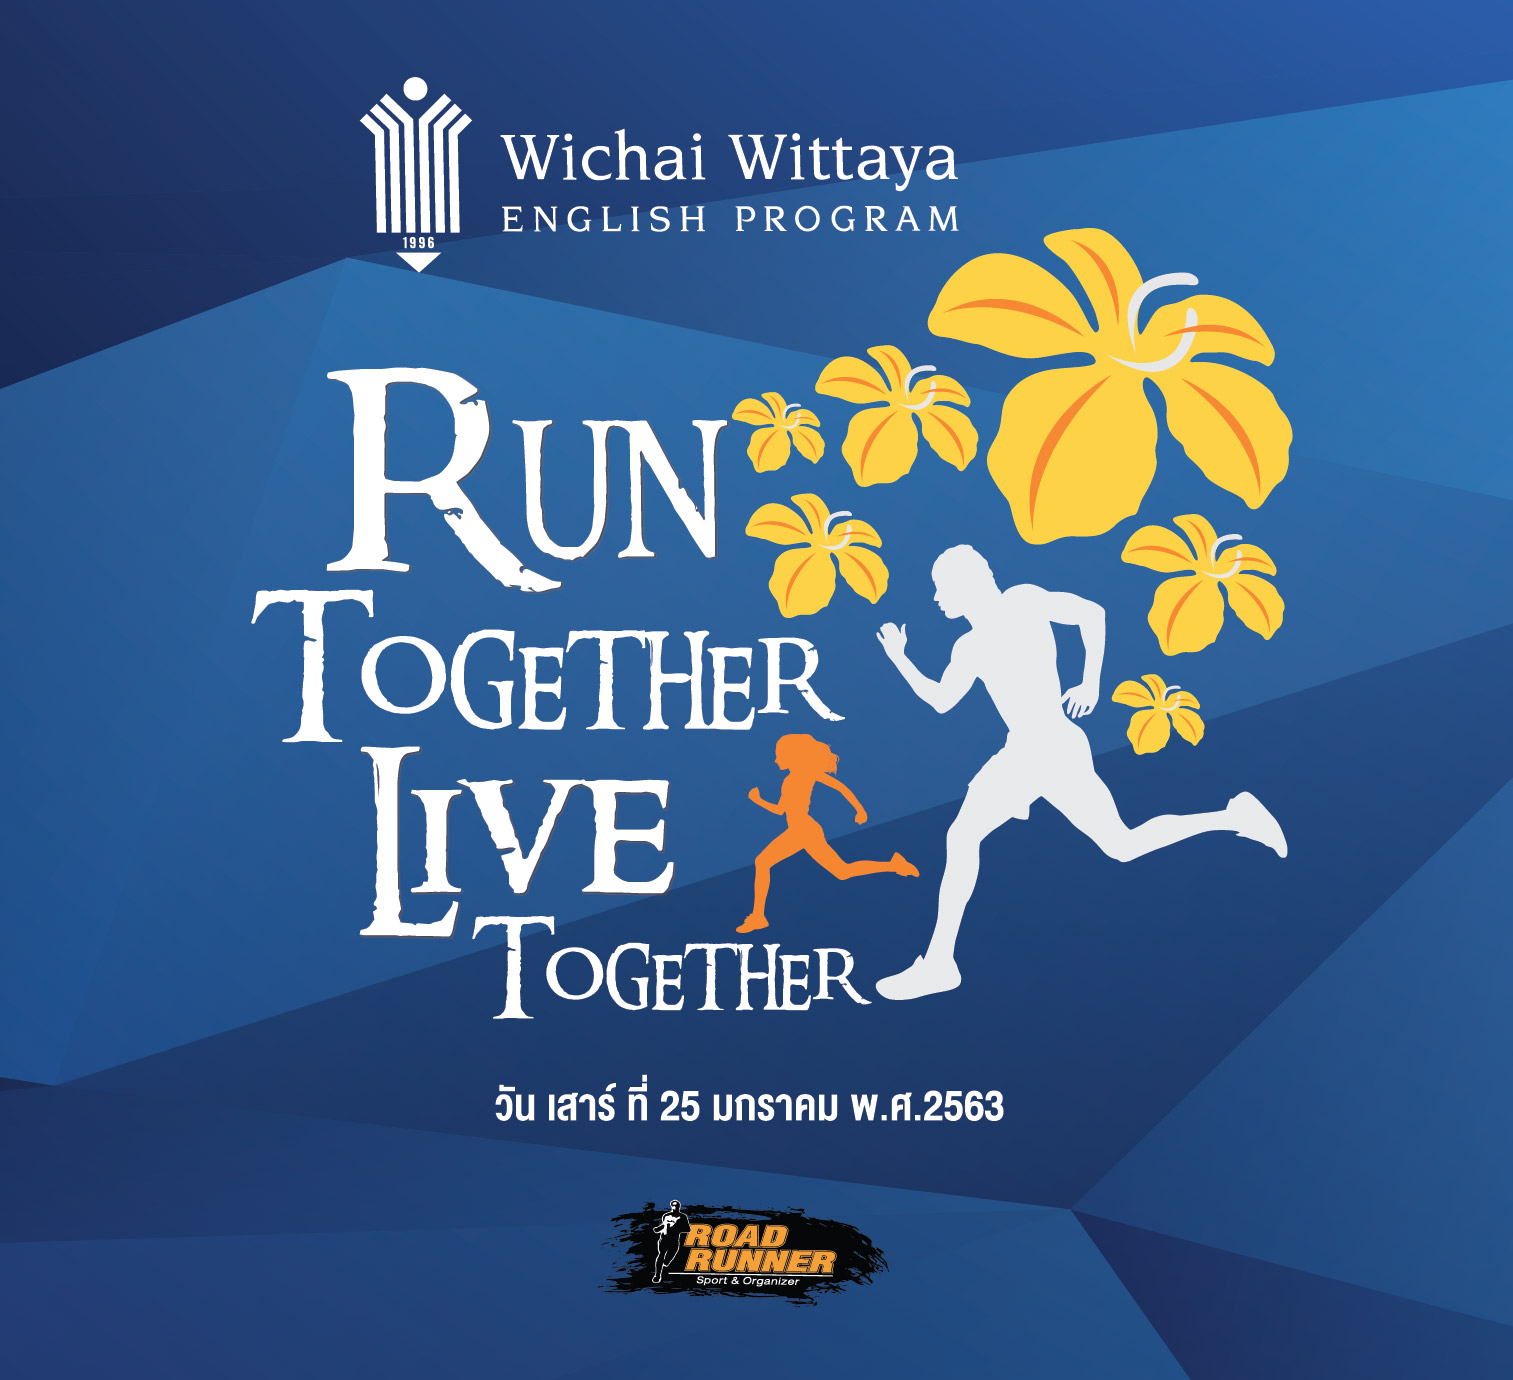 Wichai Wittaya Run Together Live Together 2019